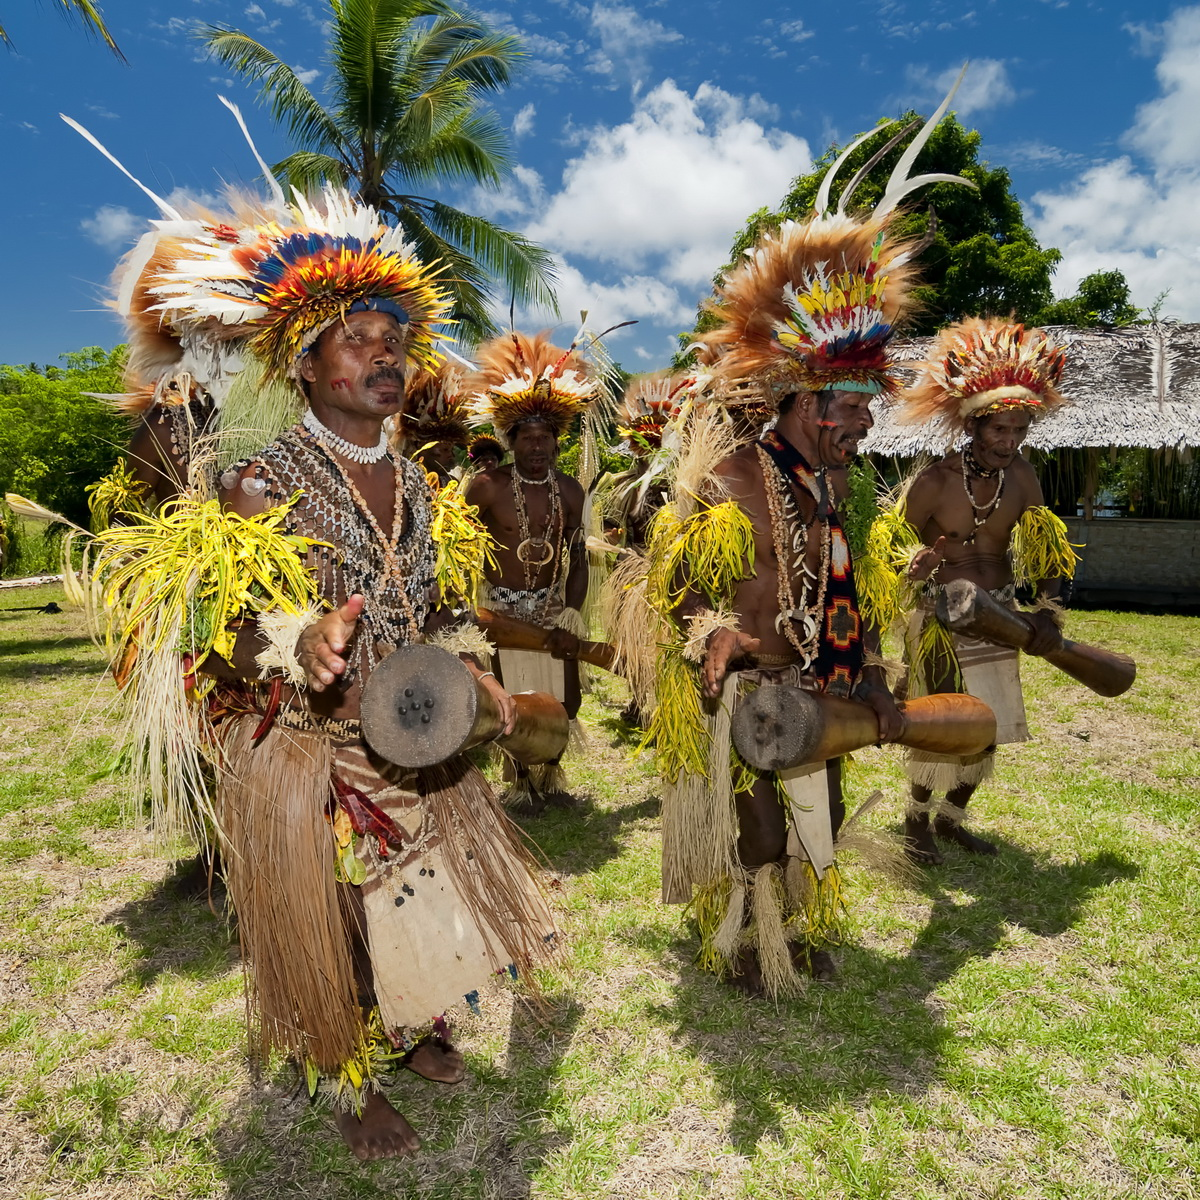 Facial tattoos of Oro Province - Cultural Demonstration at Koje Village, near Tufi